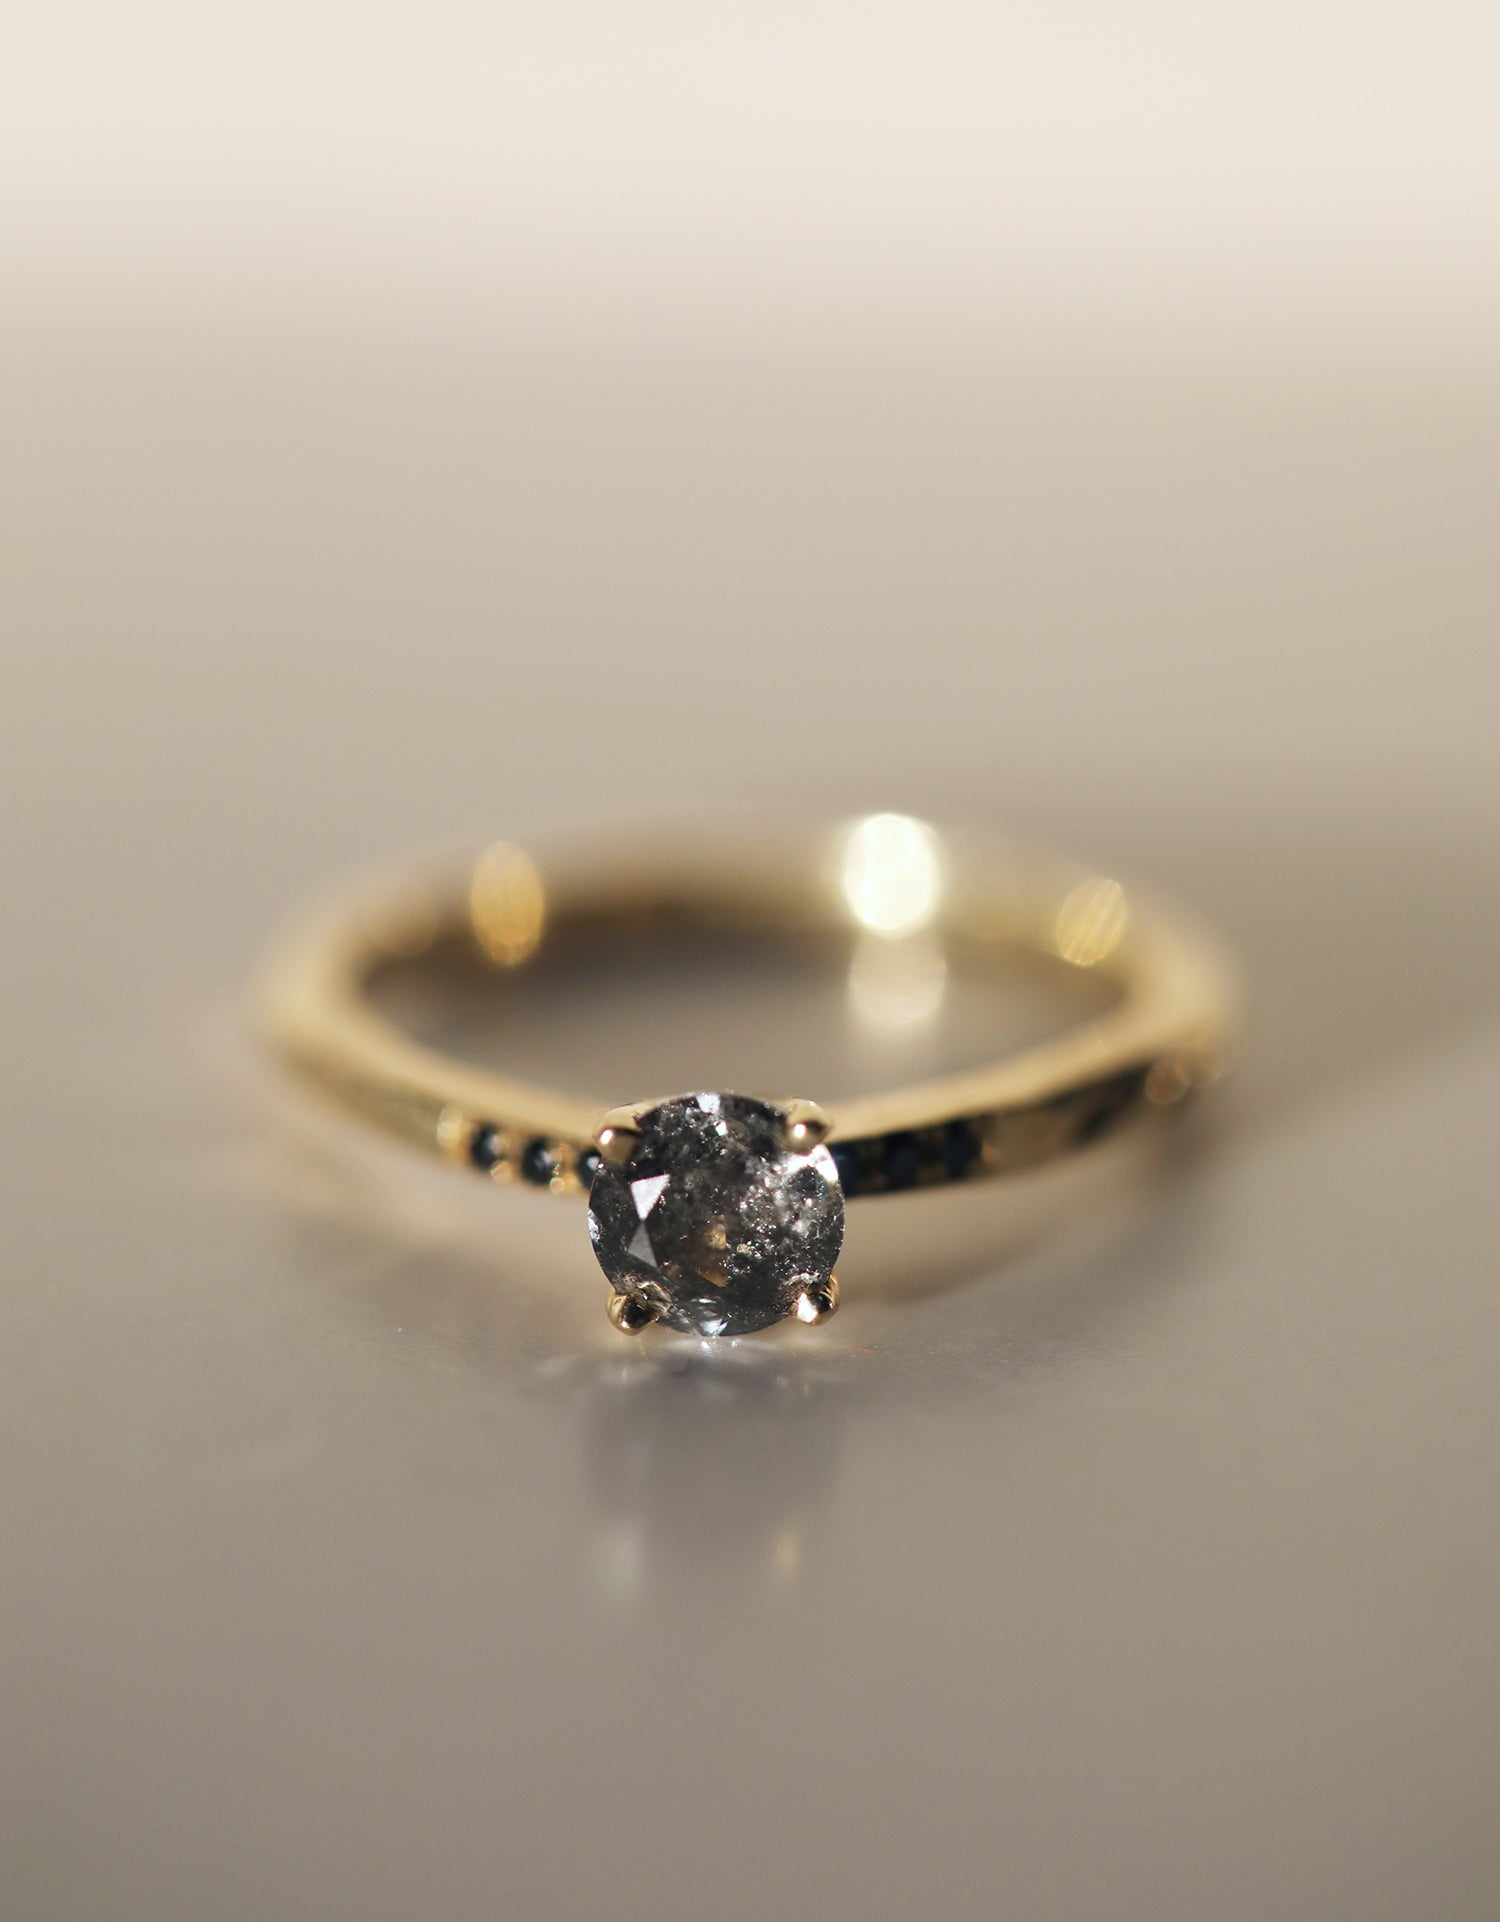 Salt N Pepper Ragged Solitaire 0.5ct